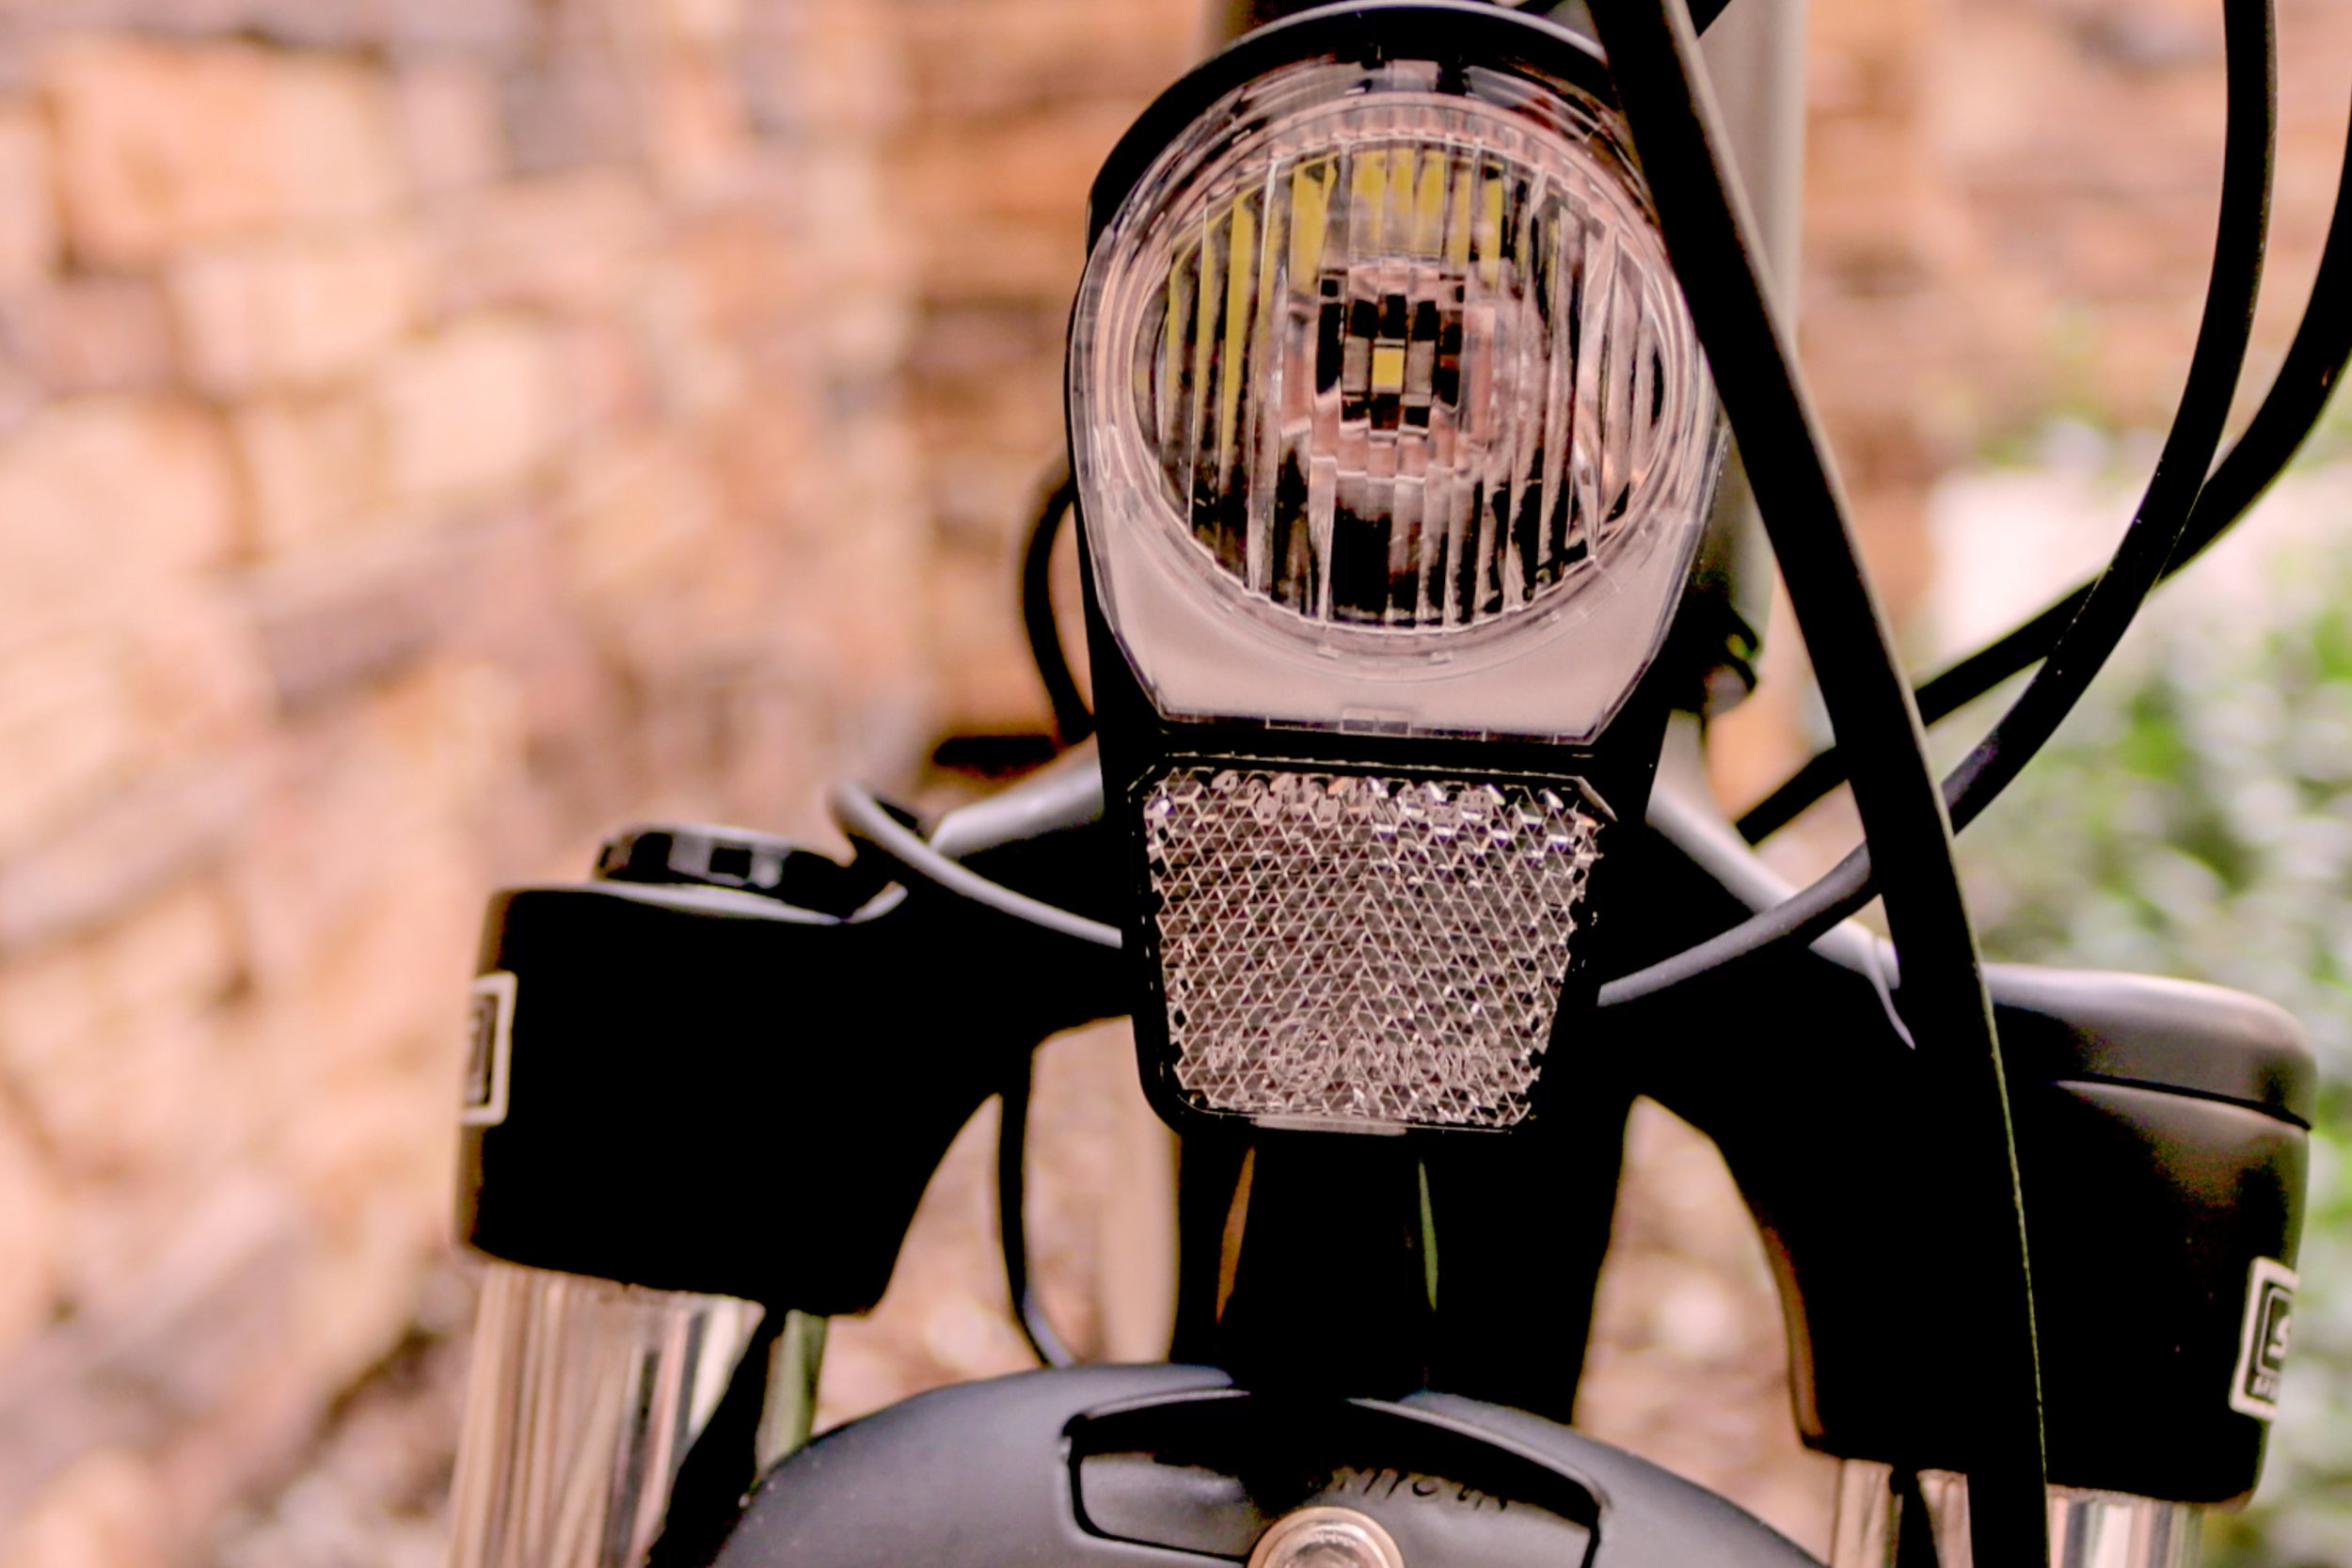 electrified-reviews-populo-scout-electric-bike-review-headlight.jpg